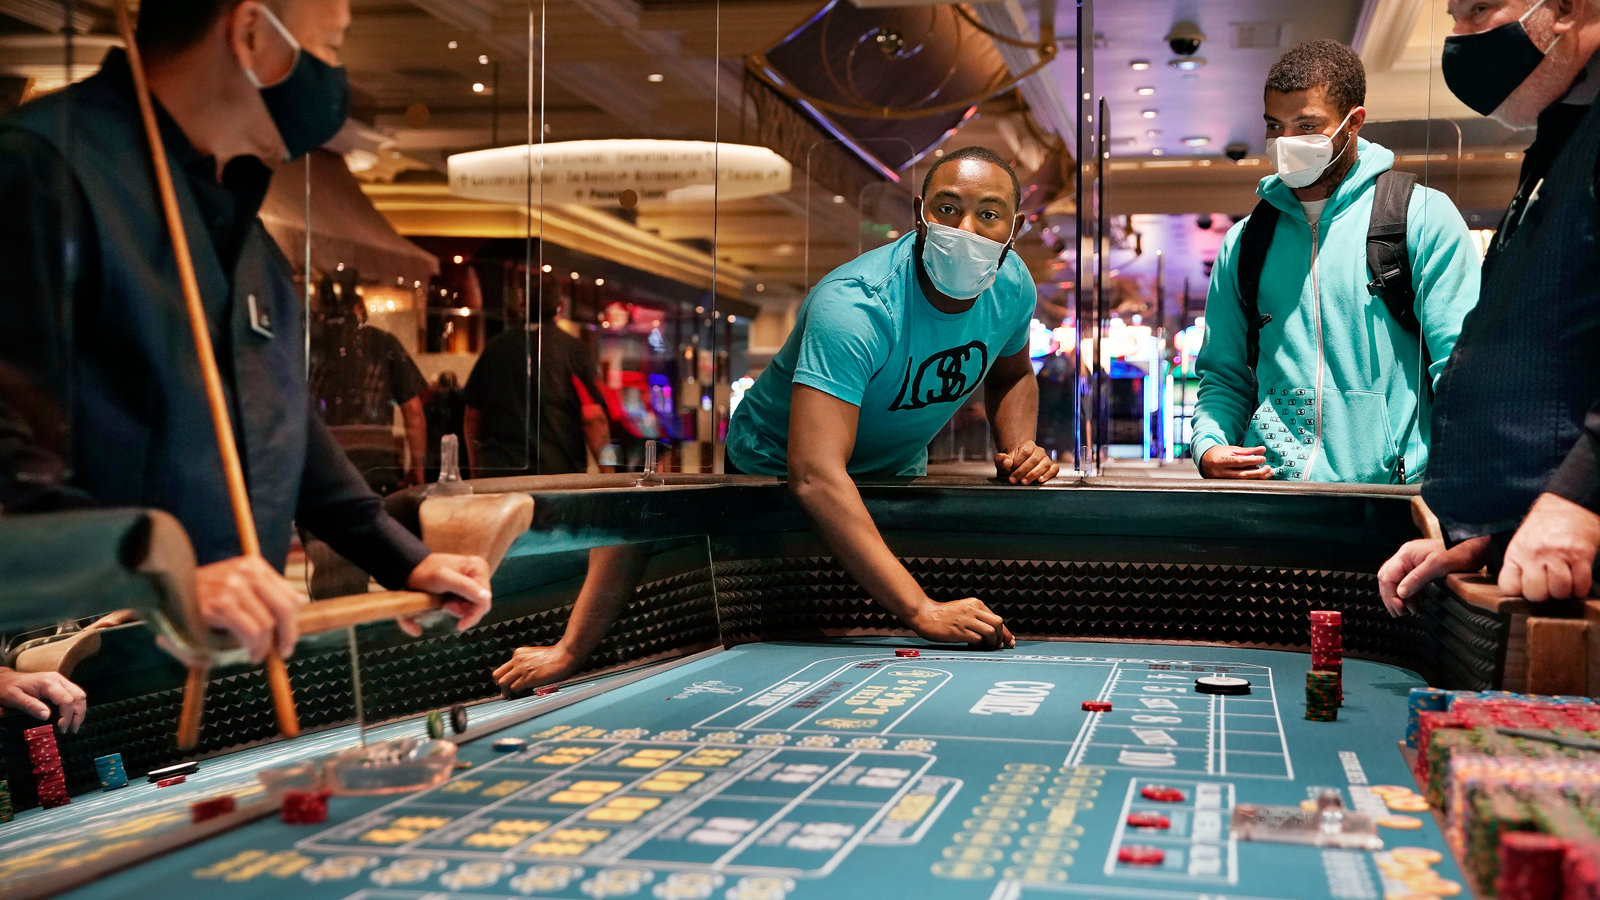 Coronavirus News: Las Vegas Economy is Slowing Down But Slots are Running Well at Local Casinos